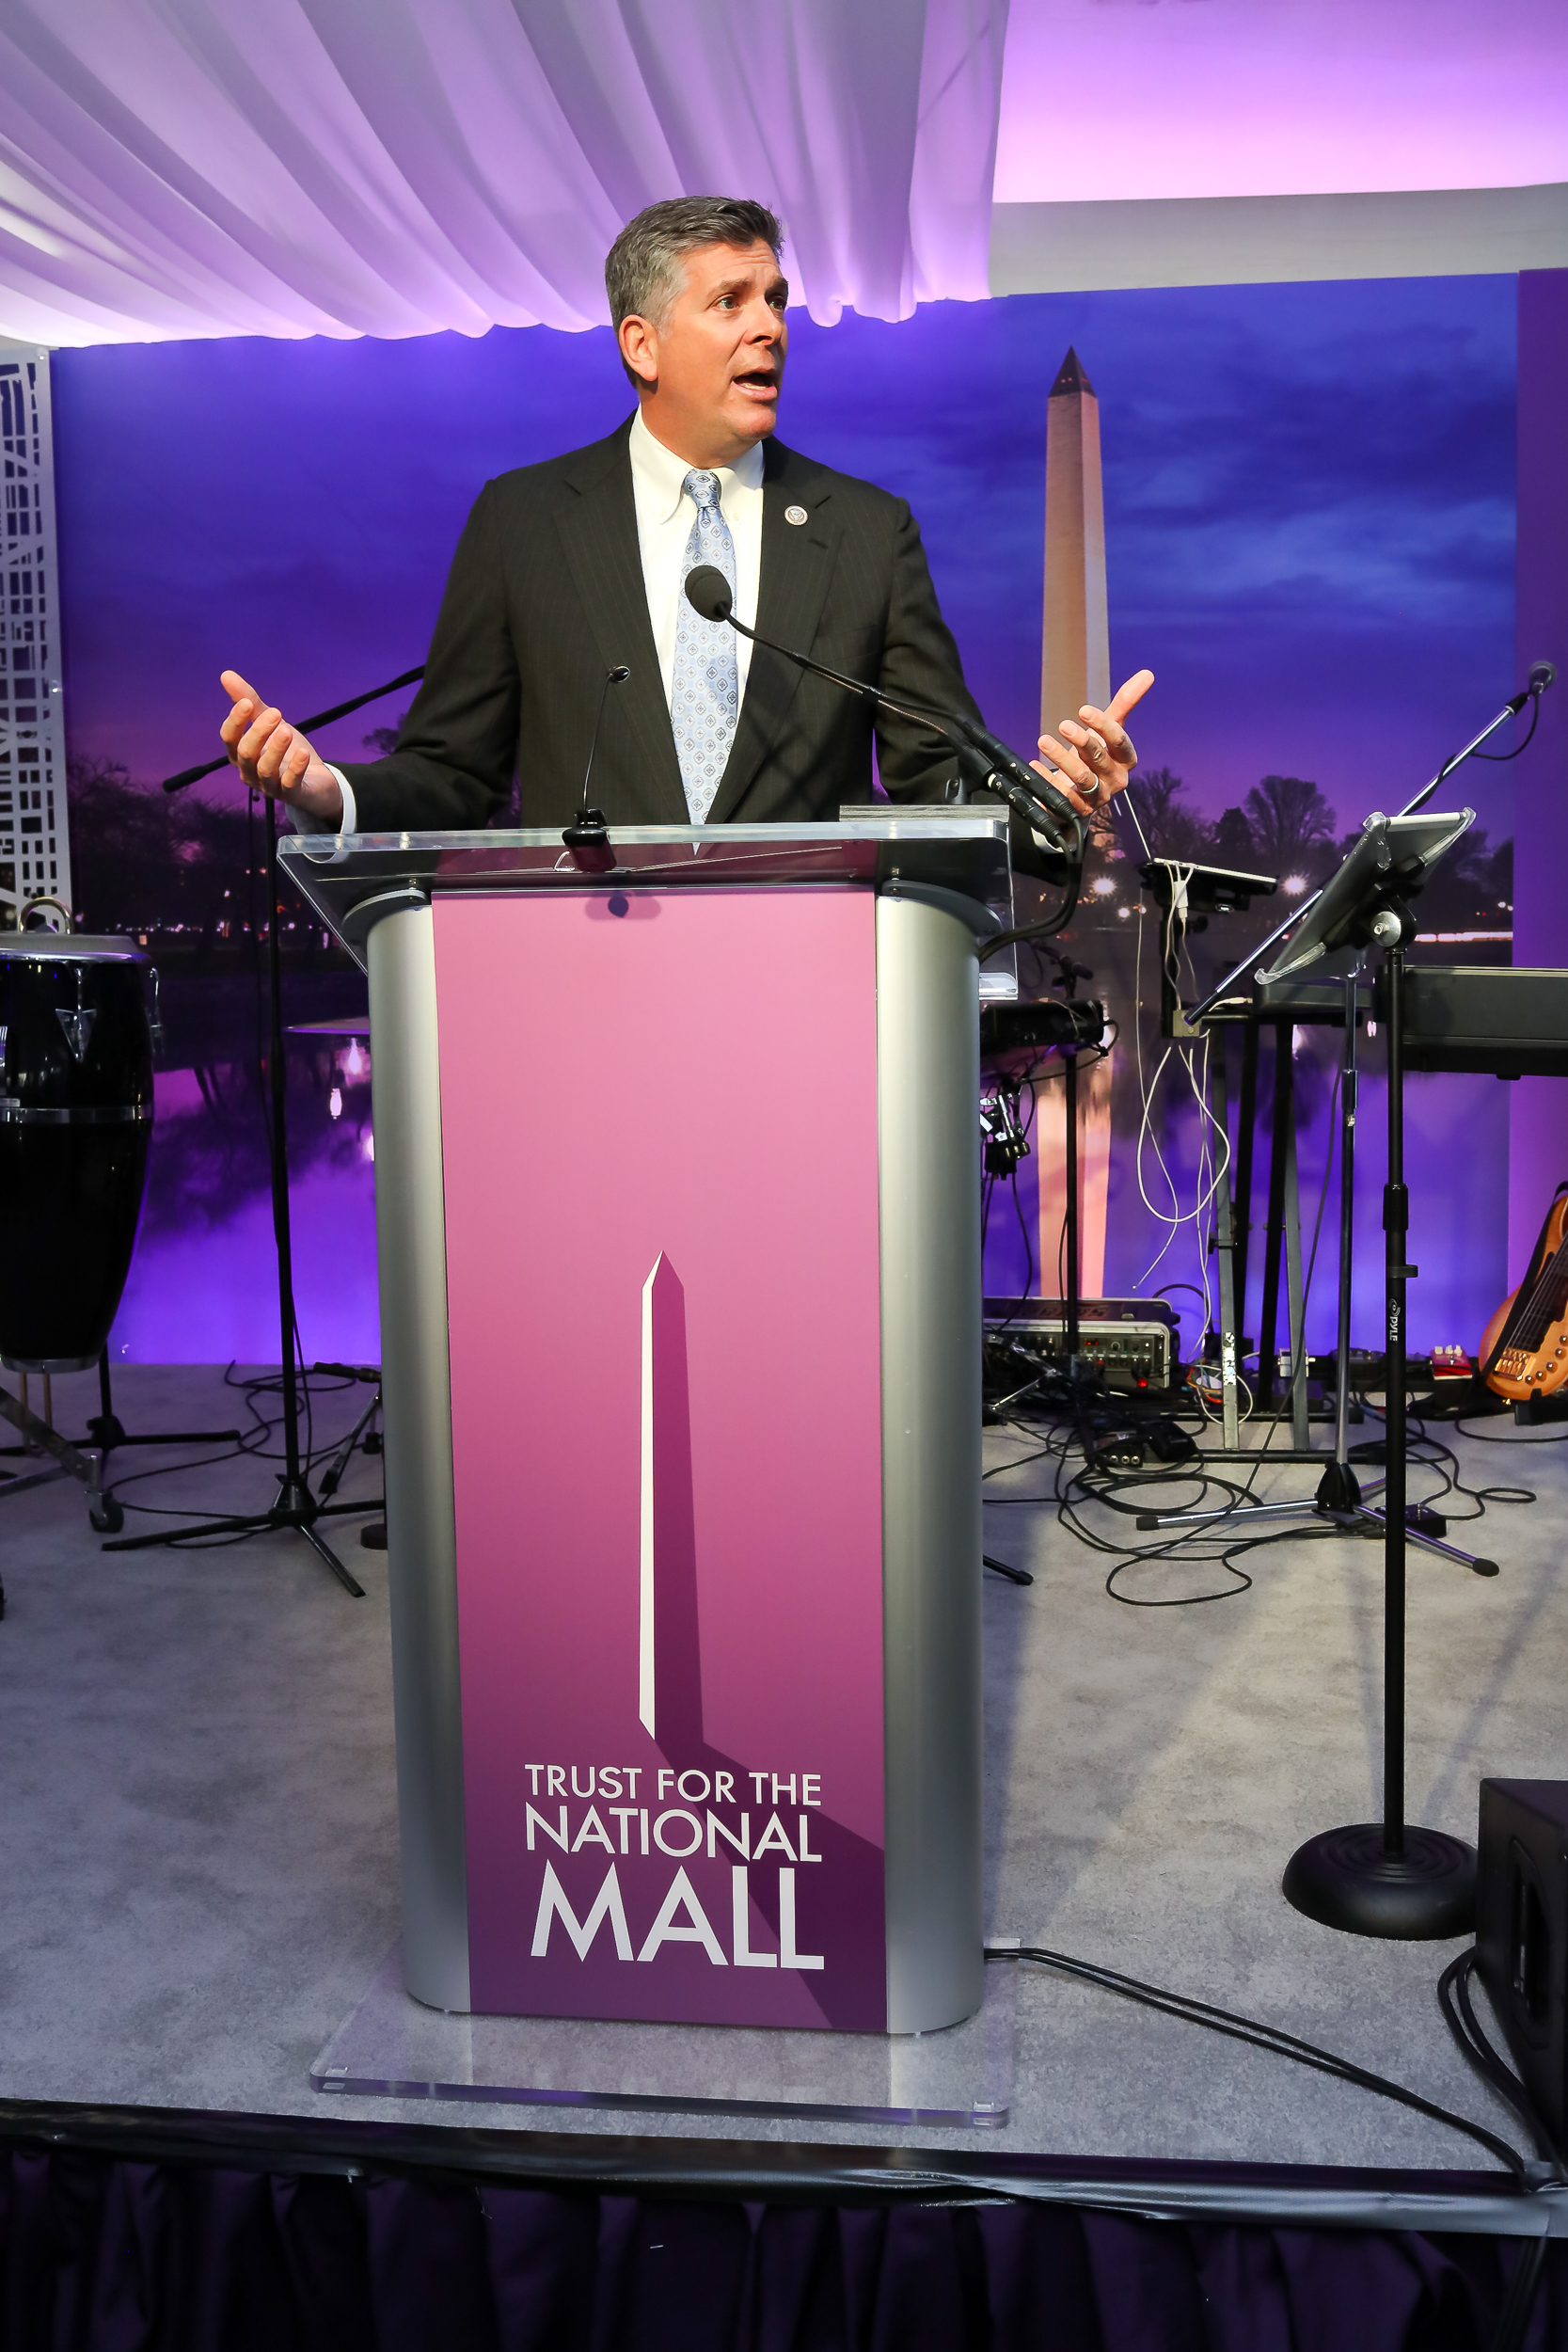 National Park Week Celebrated at 11th Annual BALL for THE MALL images 4